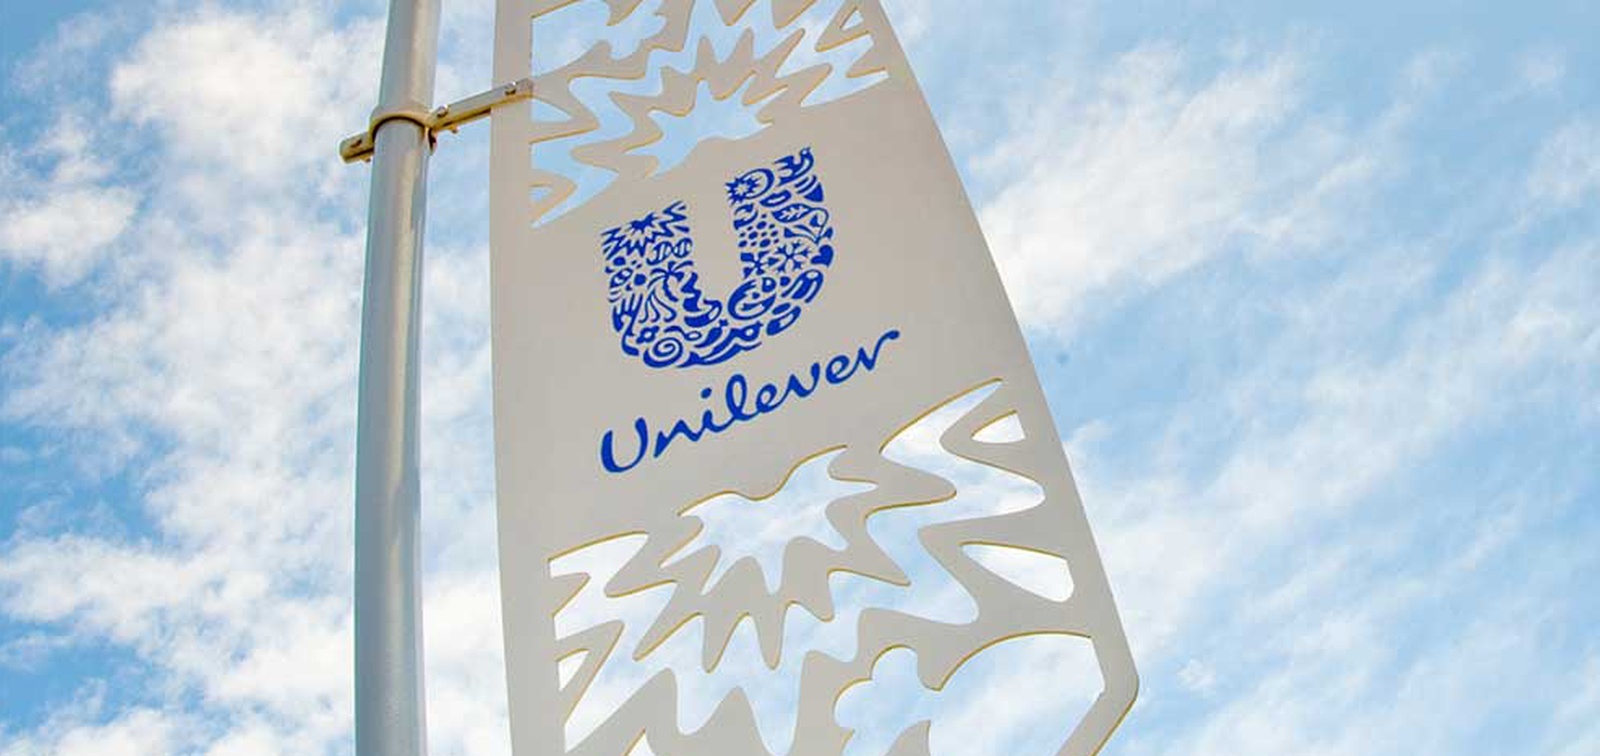 Unilever promises living wages to those directly supplying goods and services by 2030